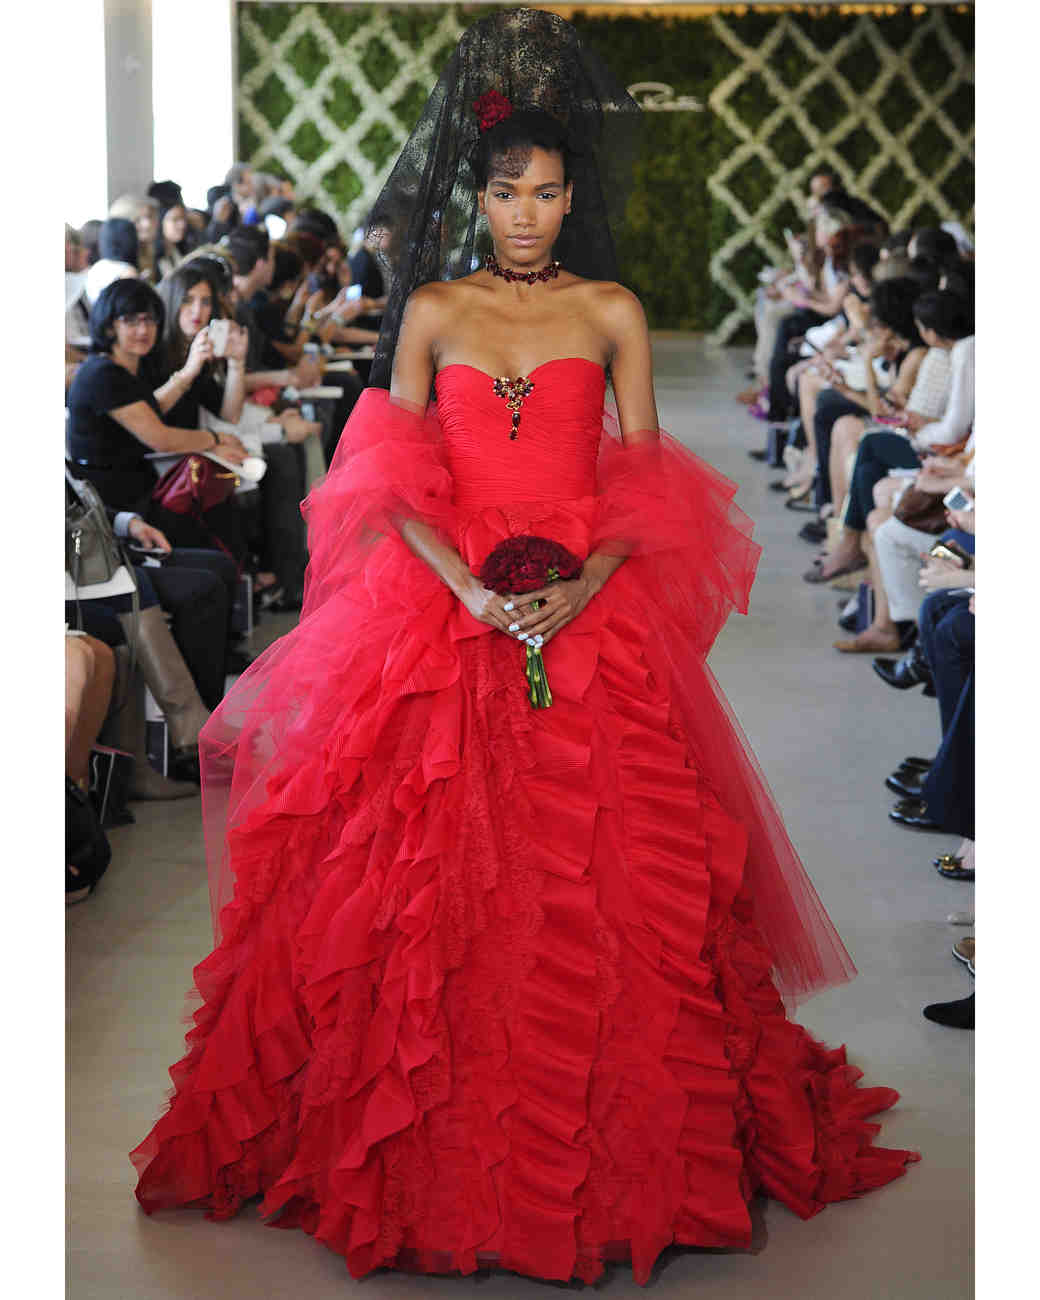 Red Wedding Dresses: 7 Red Wedding Dresses That'll Leave You Re-Thinking White